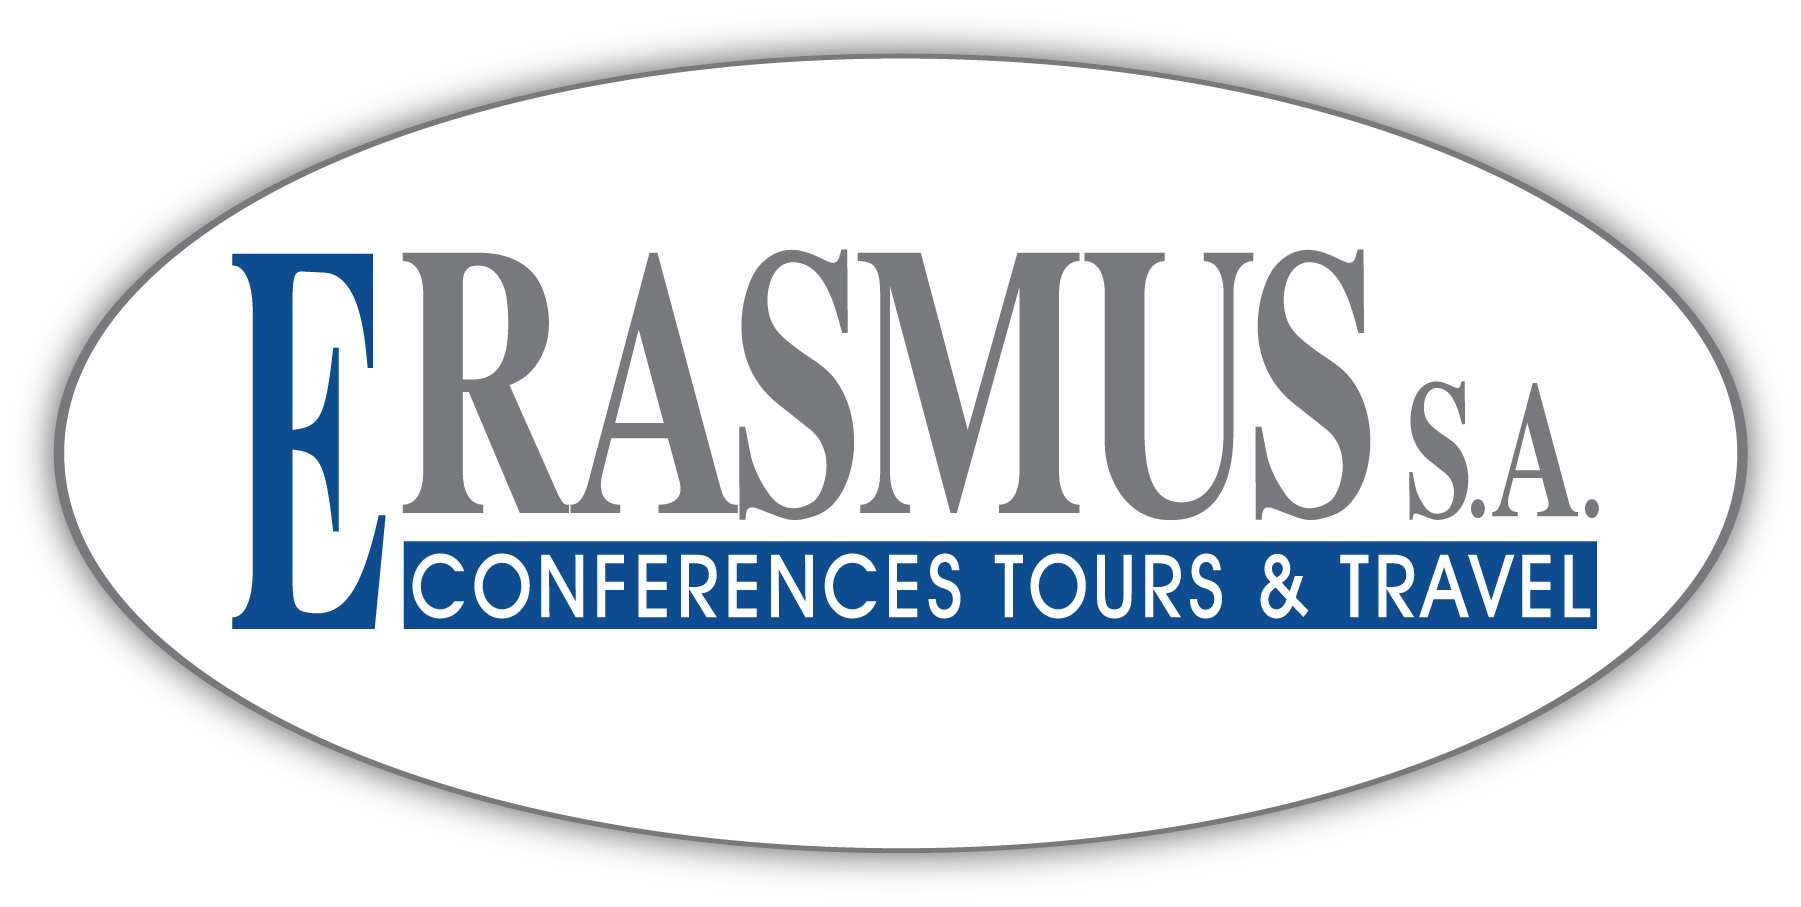 2. Erasmus Conferences Tours & Travel S.A.